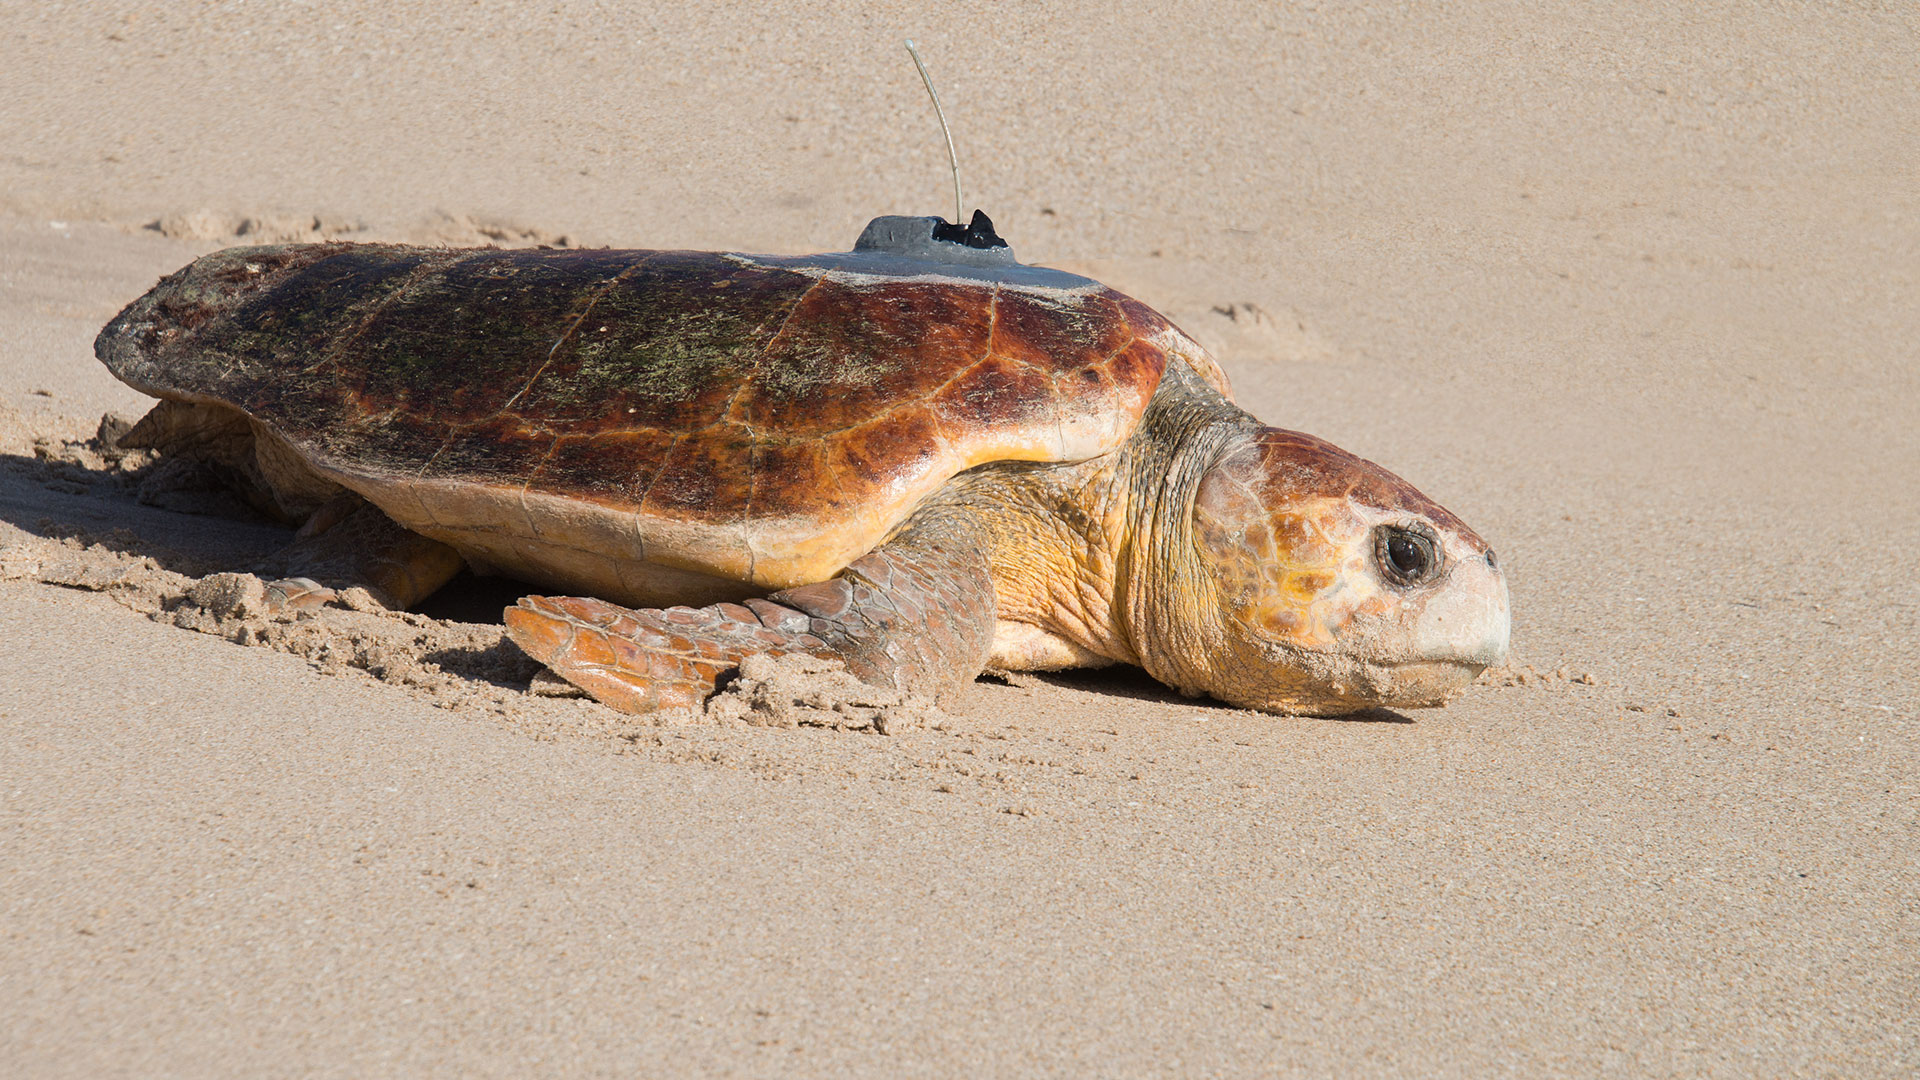 Sea Turtle with Transmitter